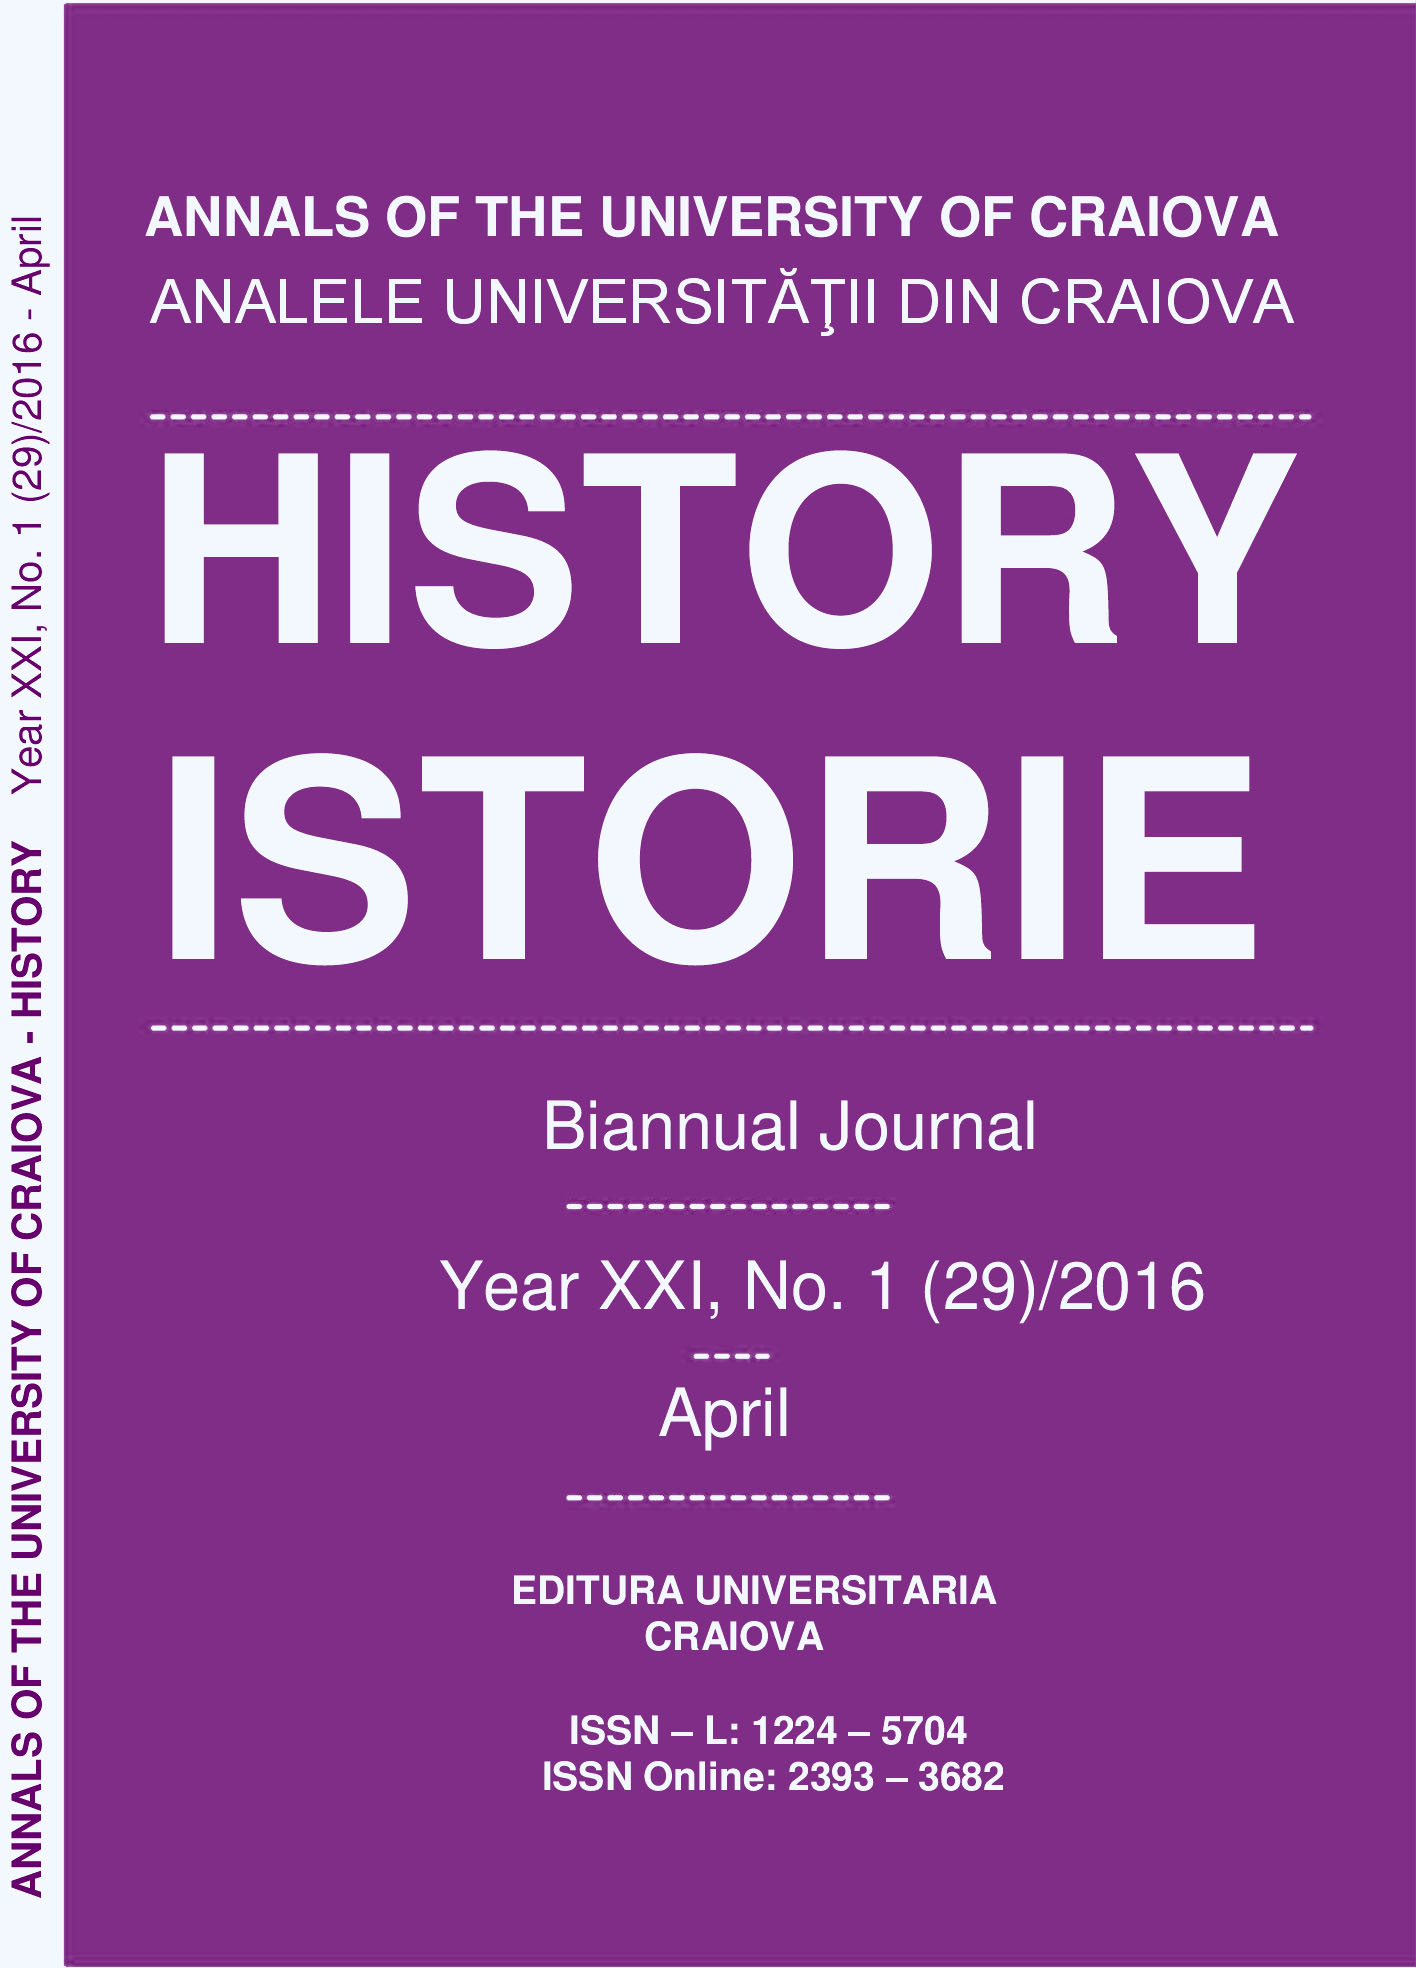 ANNALS OF THE UNIVERSITY OF CRAIOVA Year XXI, No. 1(29)/2016